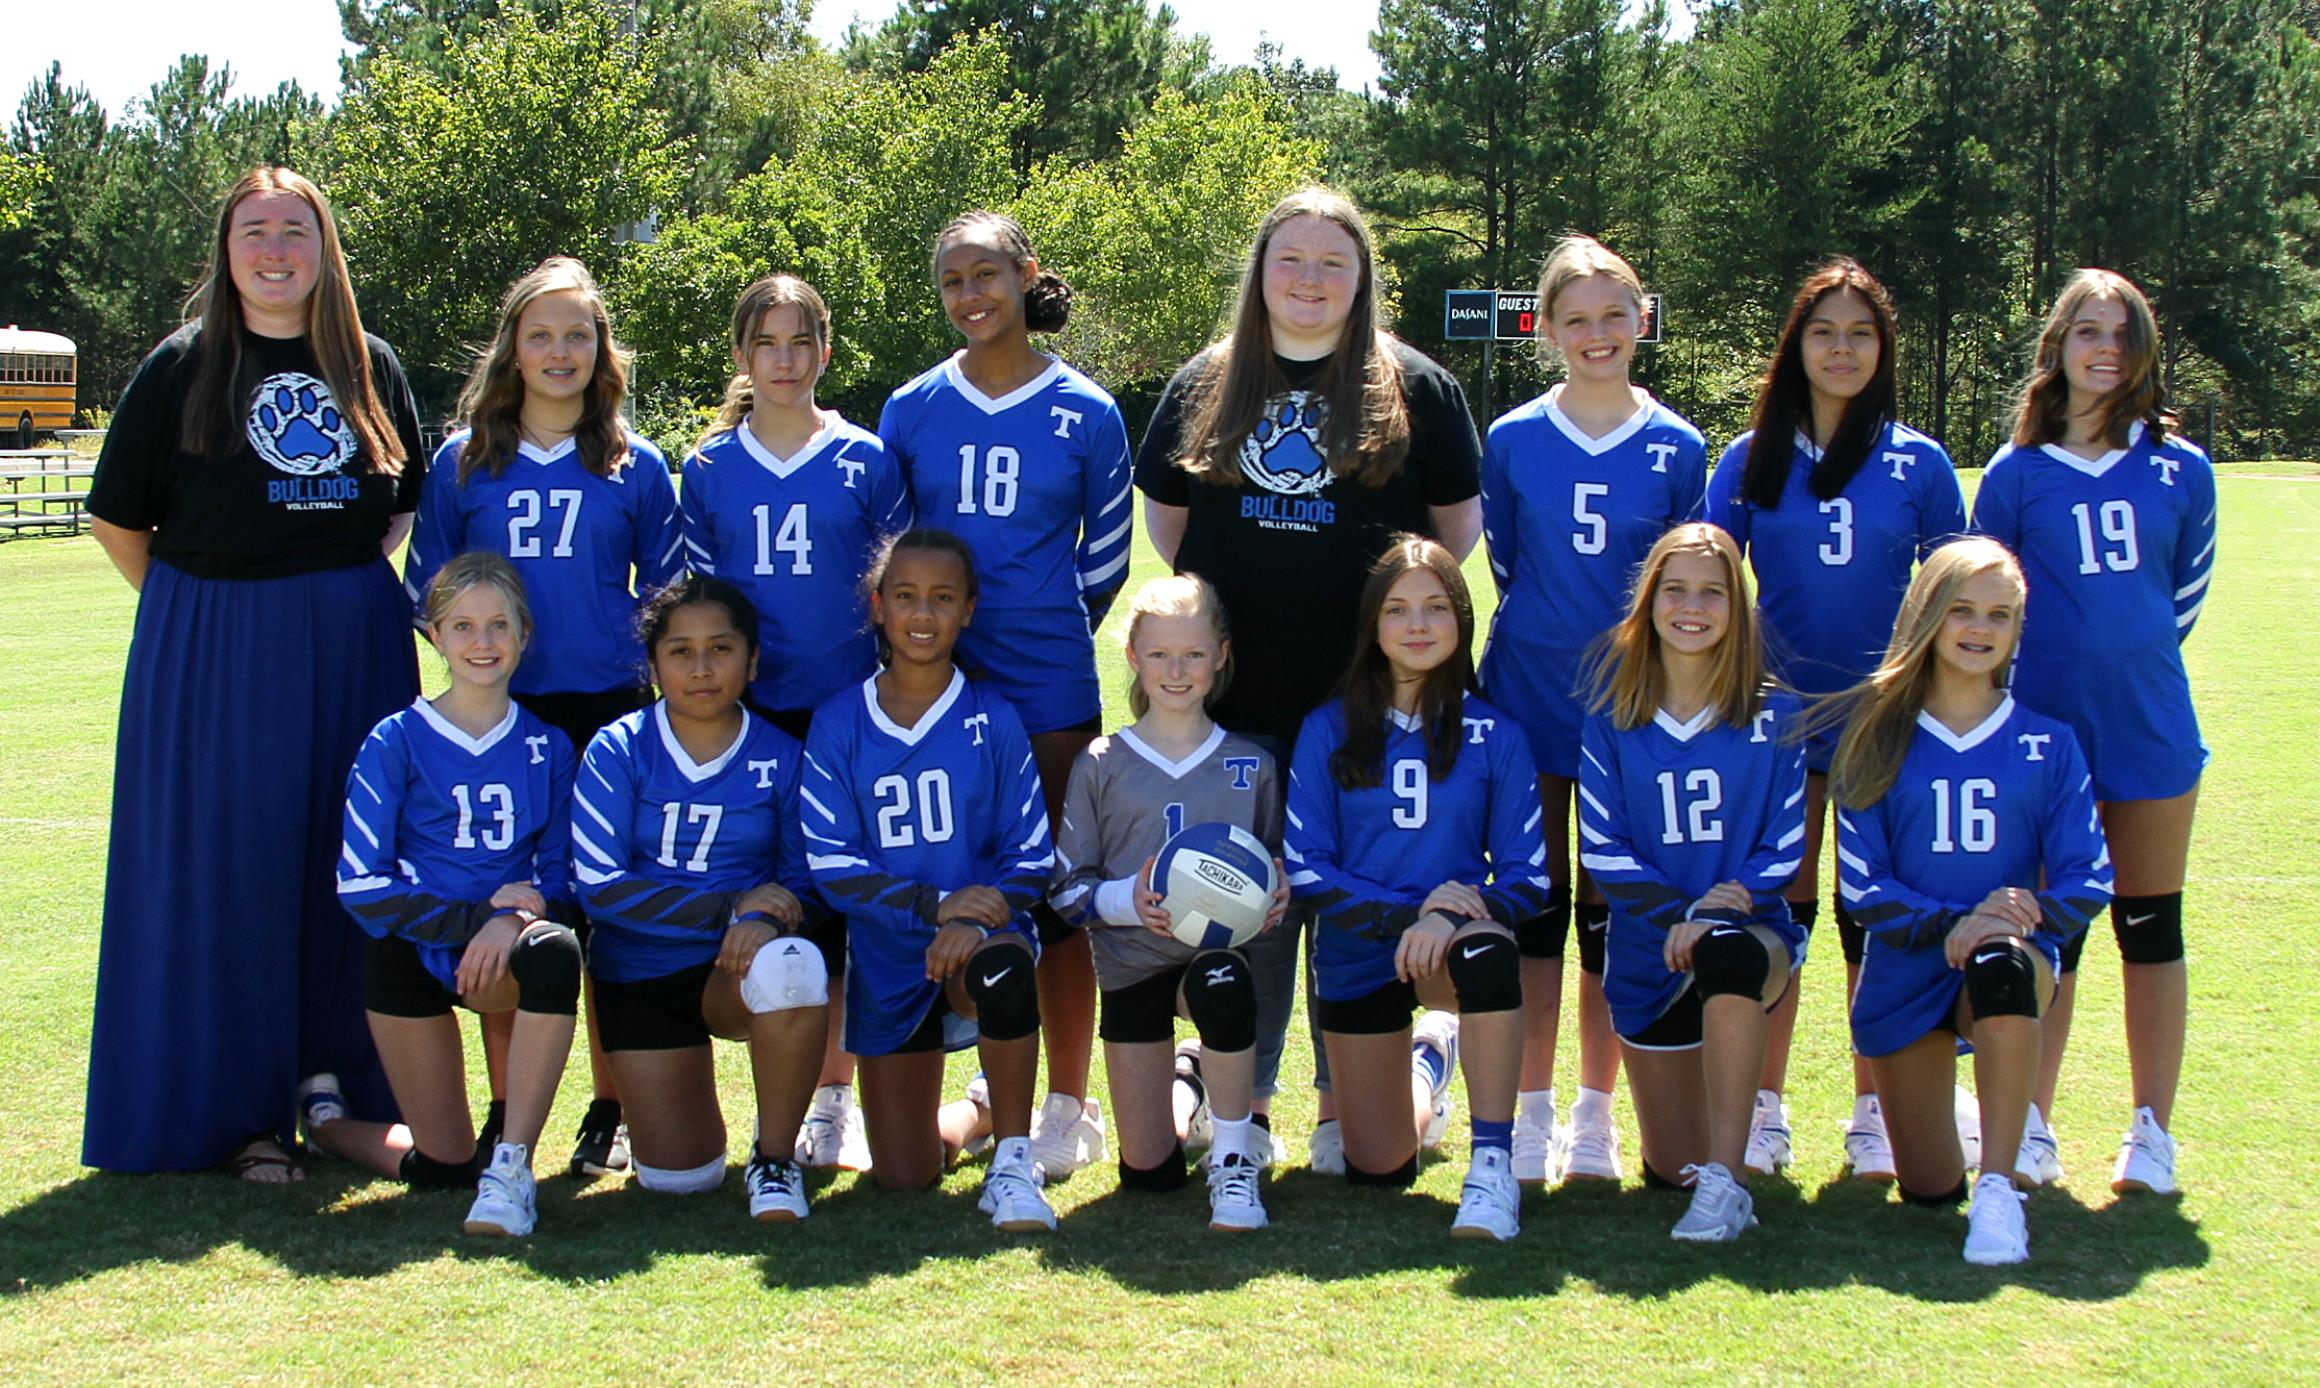 Trion Middle School JV Volleyball Team